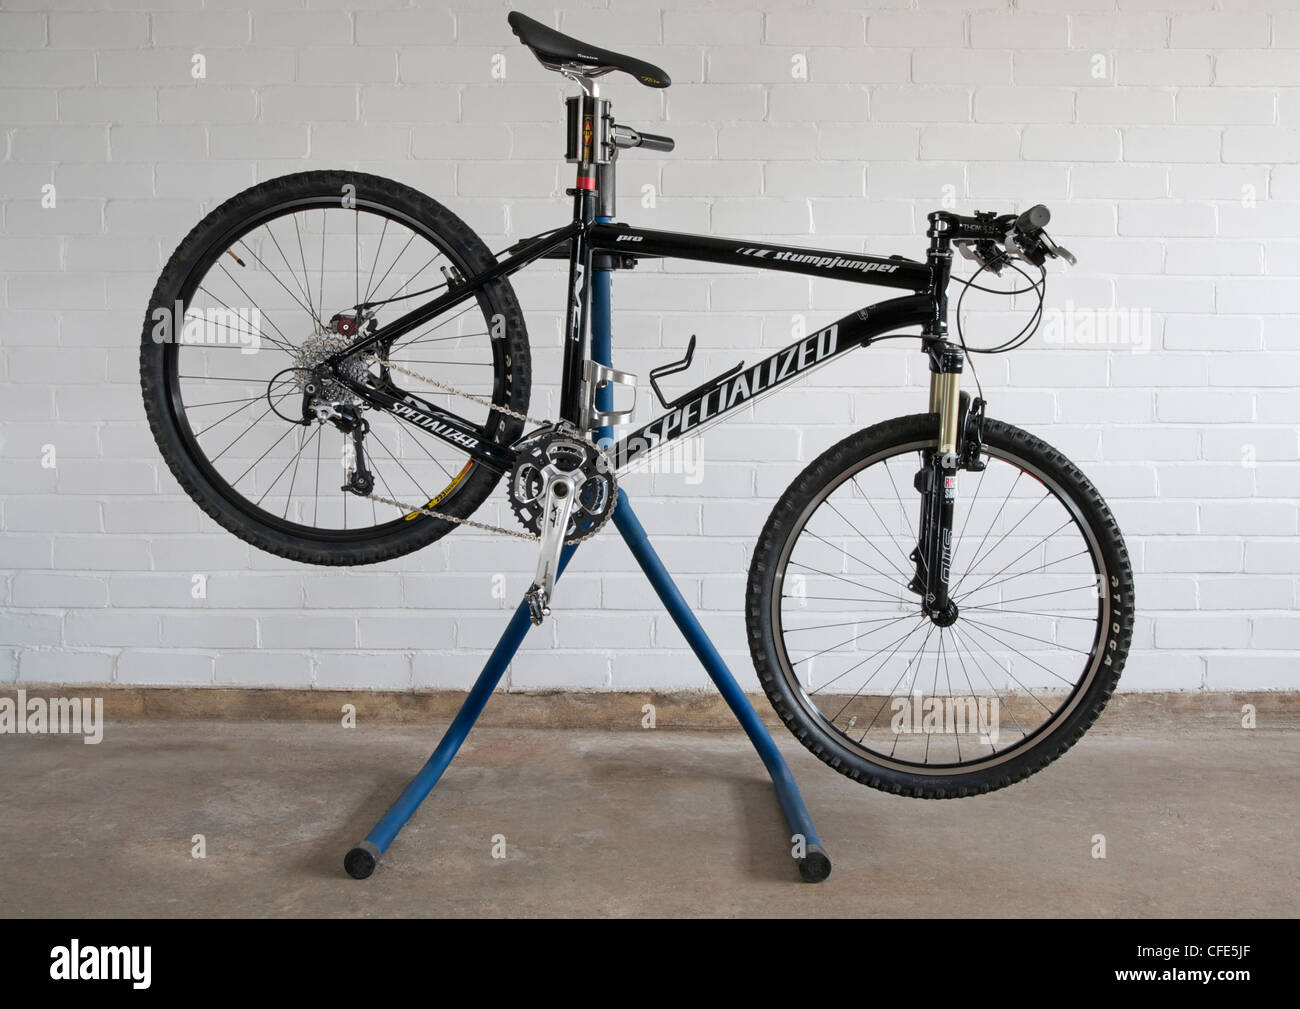 Mountain bike on bicycle work stand against brick wall - Stock Image